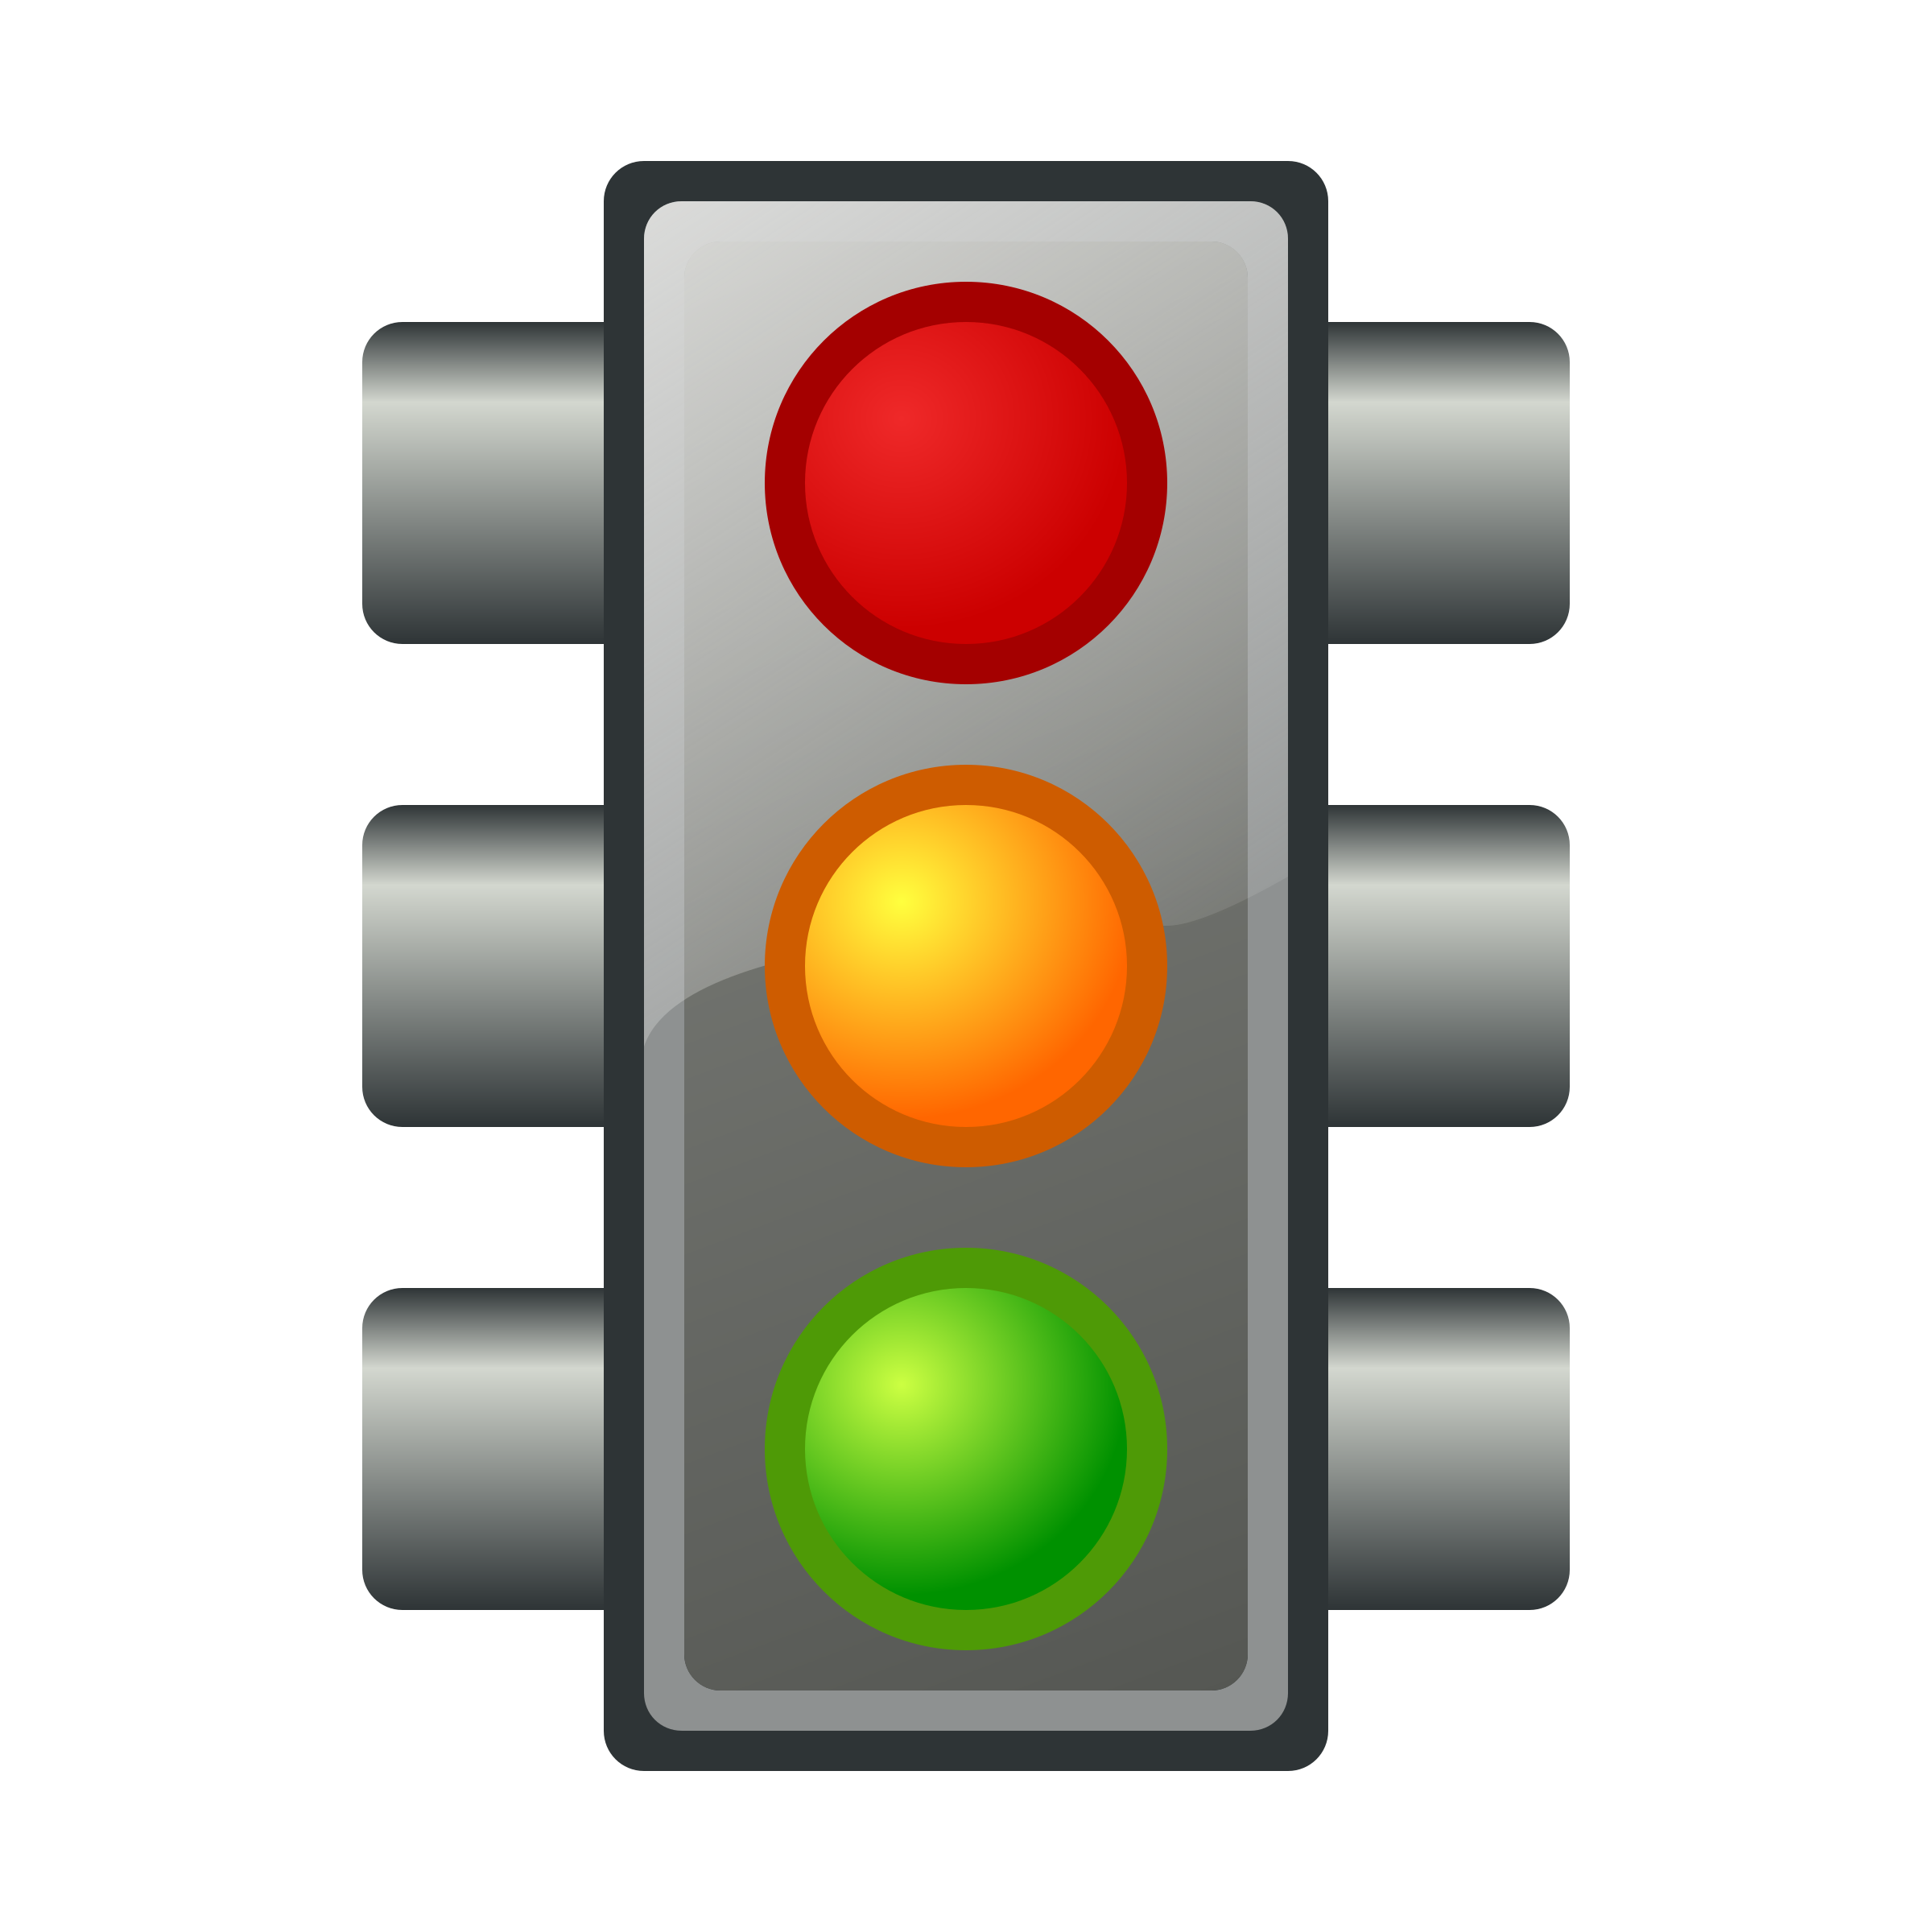 Traffic light icon by jhnri4